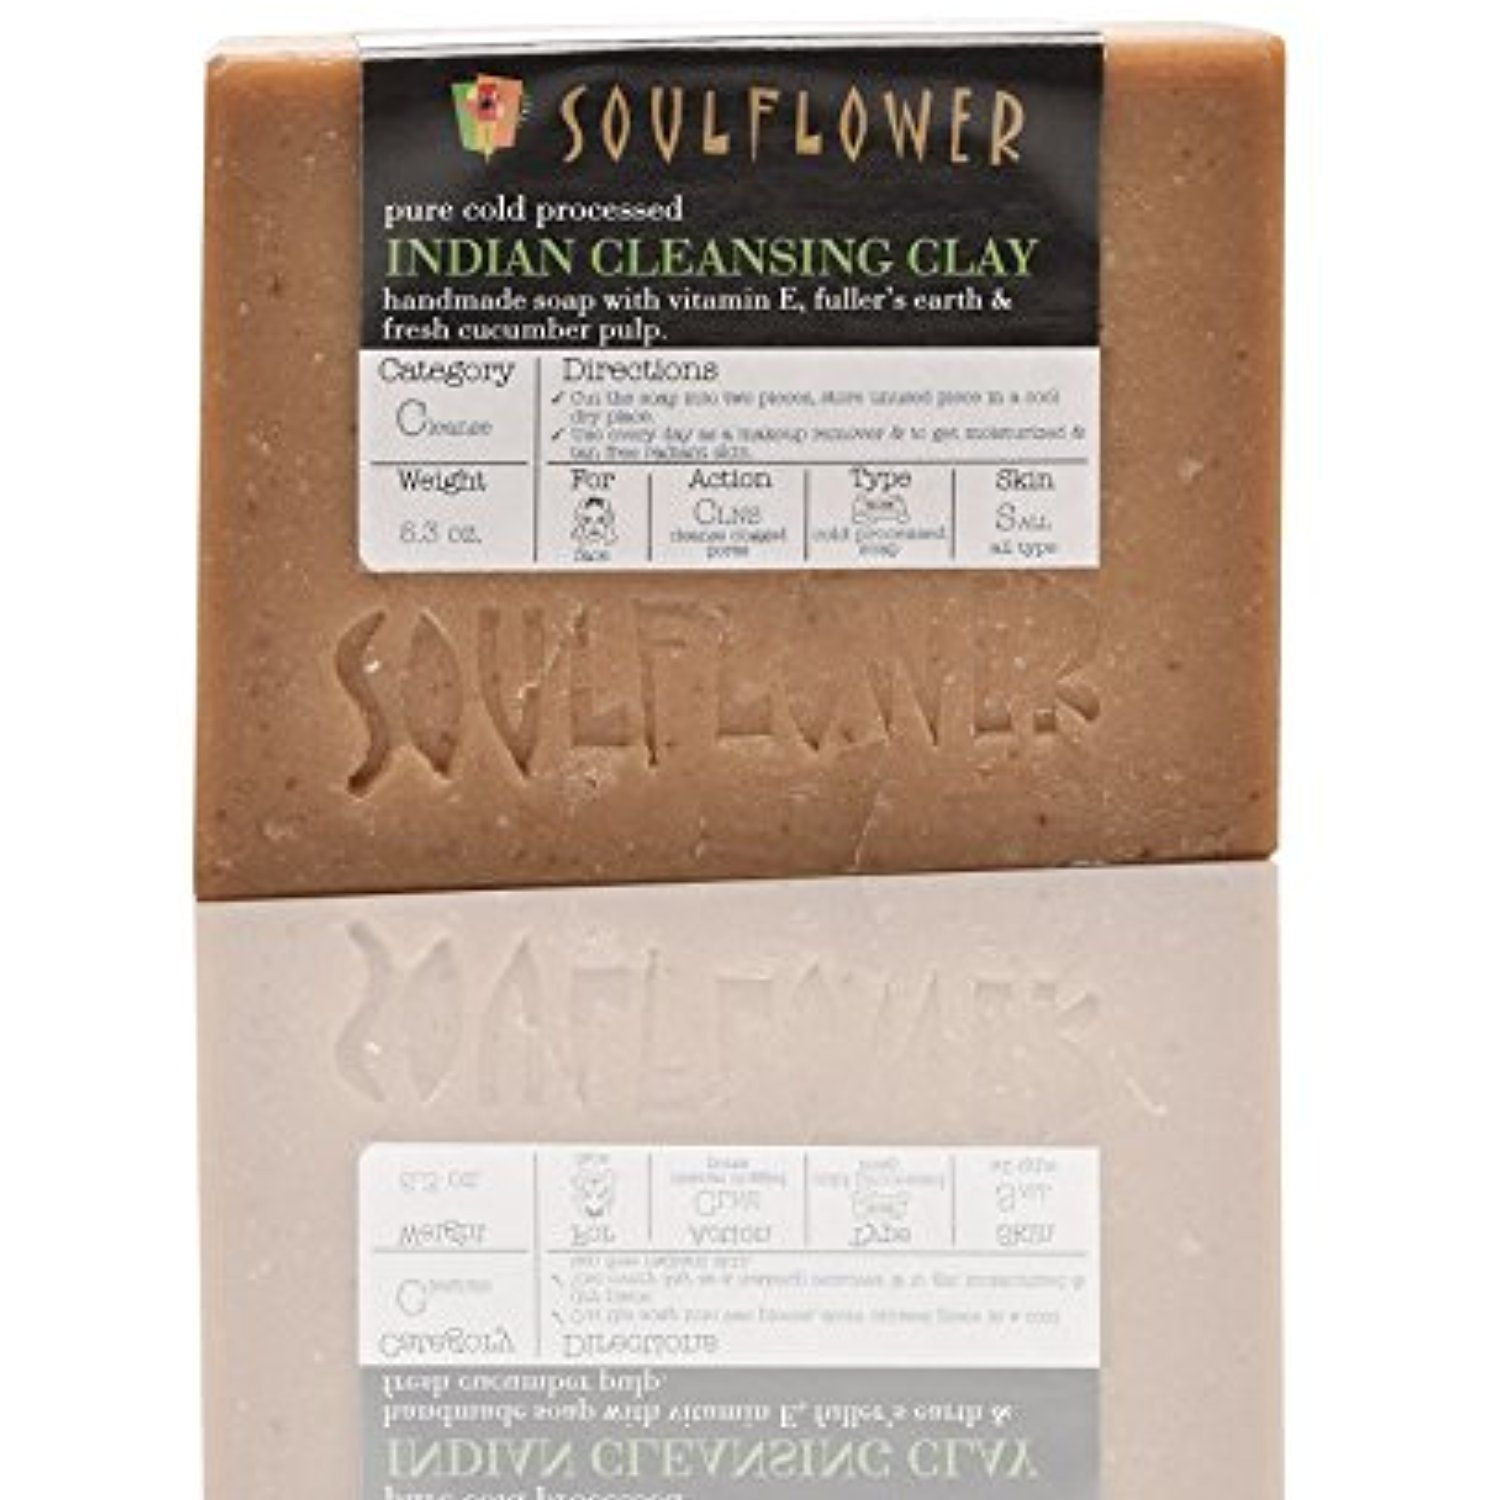 Soulflower Indian Cleansing Clay Soap, 5.3 oz, 2 Bars